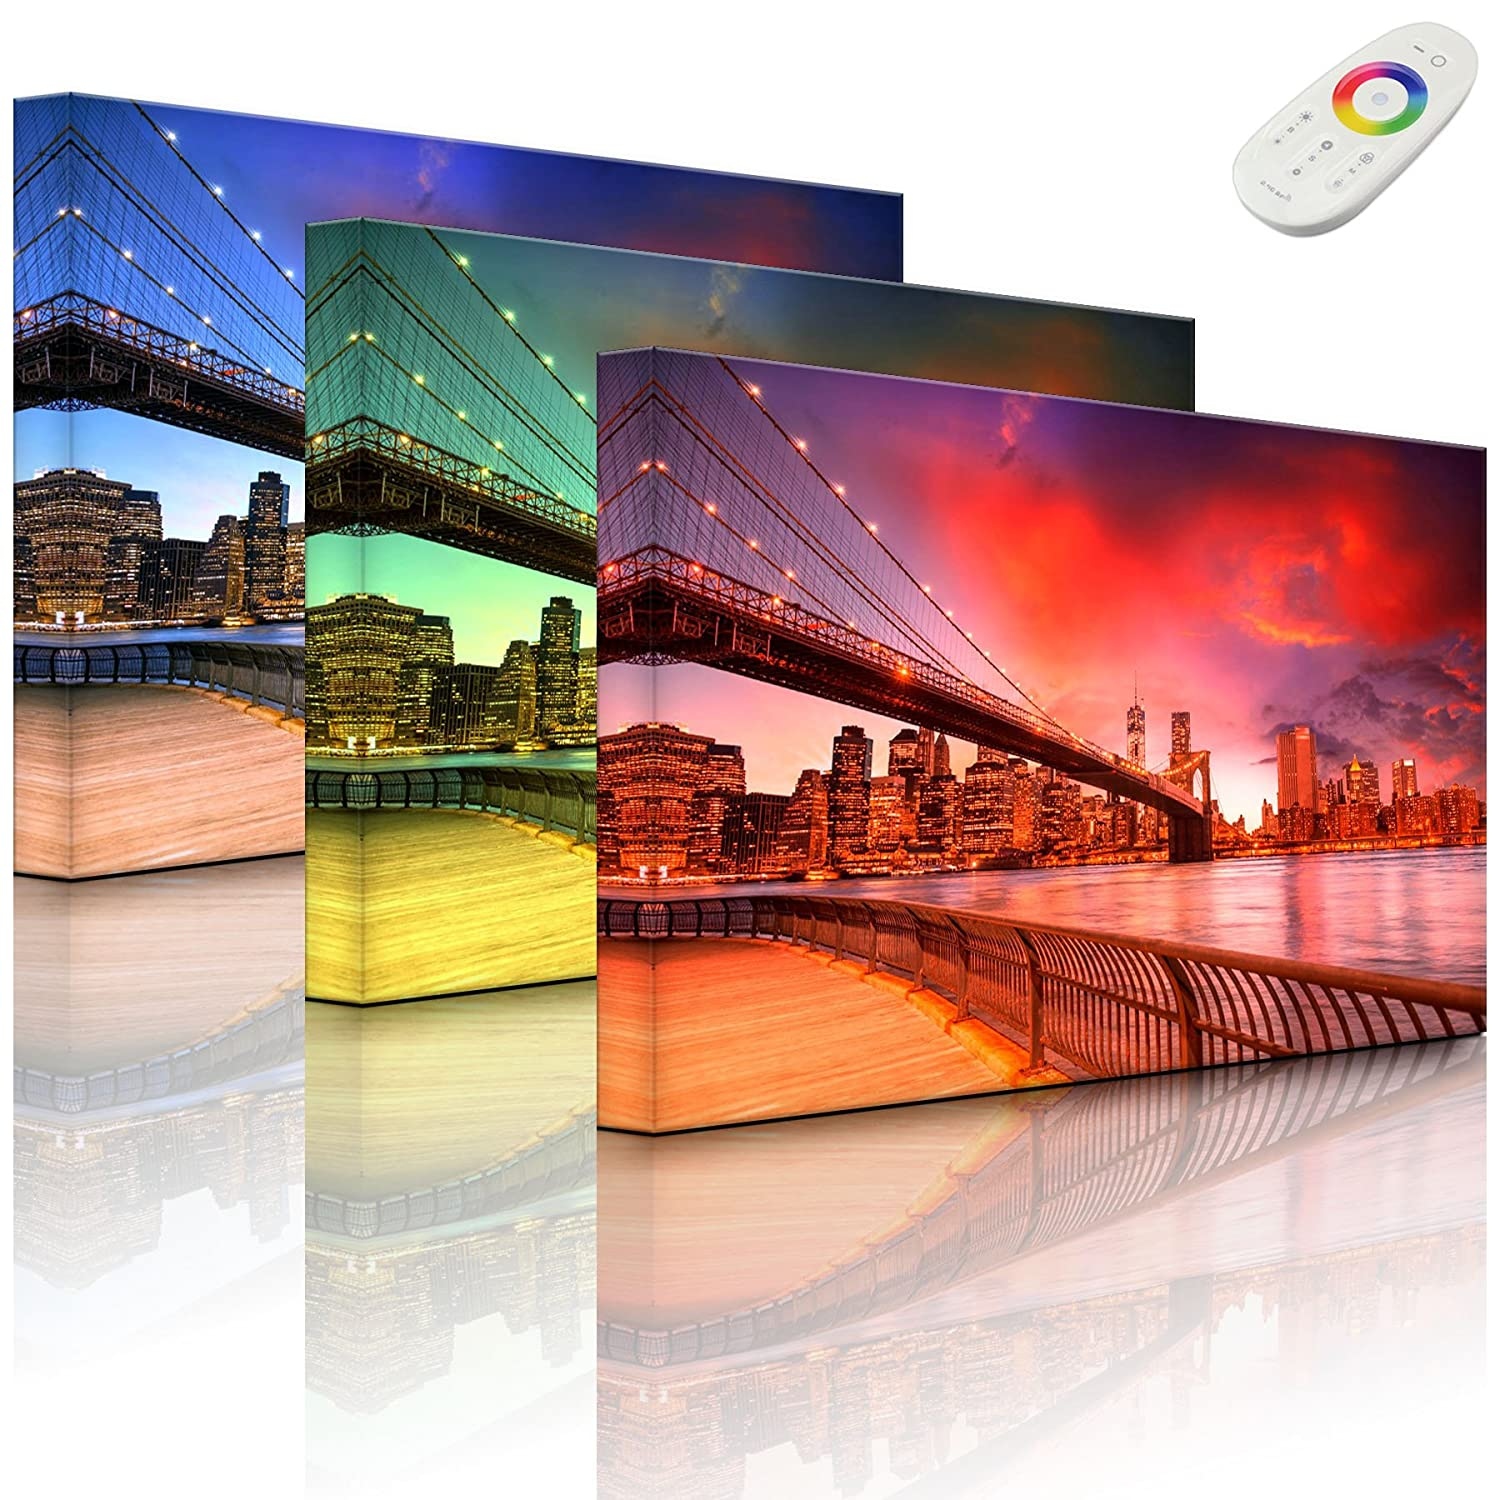 lightbox-multicolor.com Pictures illuminated - Brooklyn Bridge Park New York - 60 x 40 cm - front lighted Rossteutscher GbR